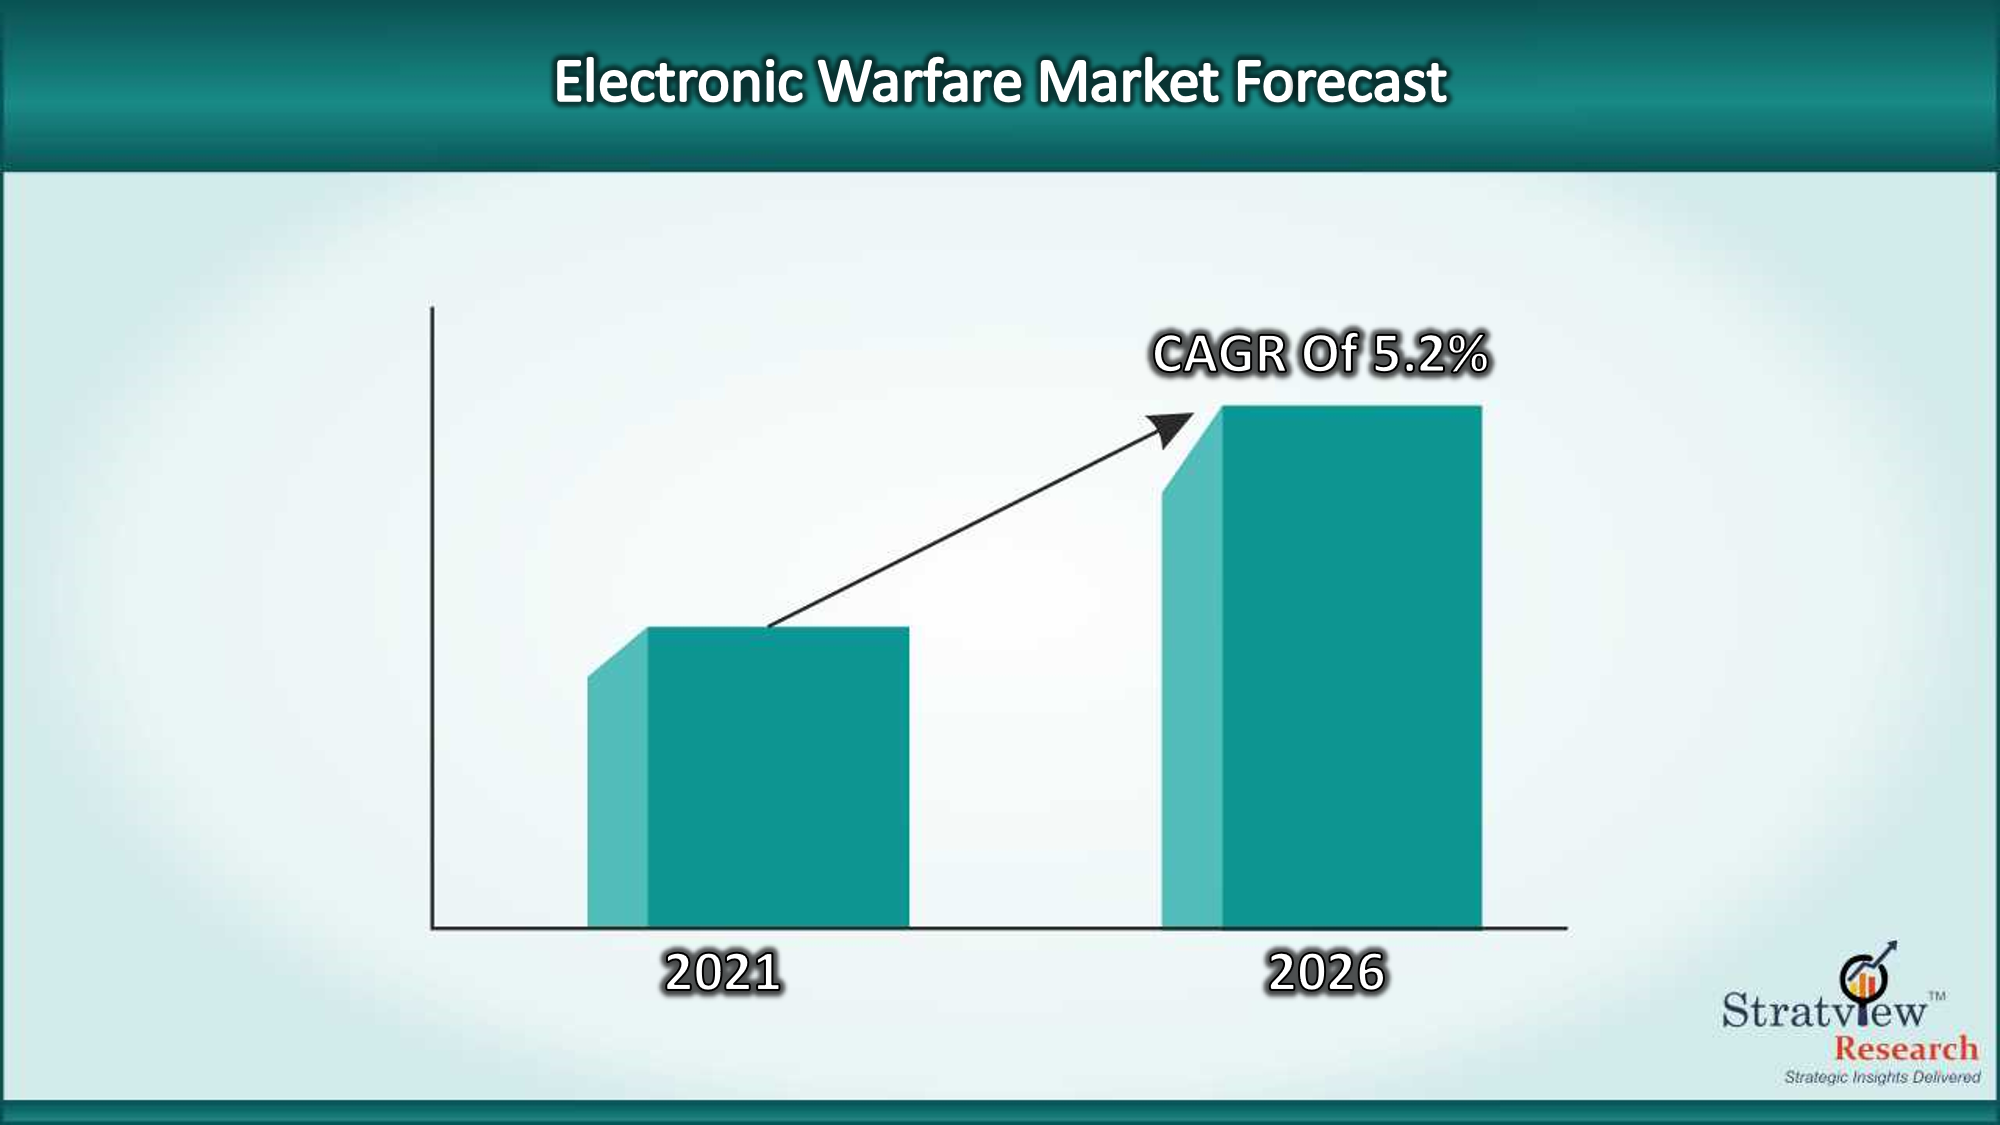 Electronic Warfare Market